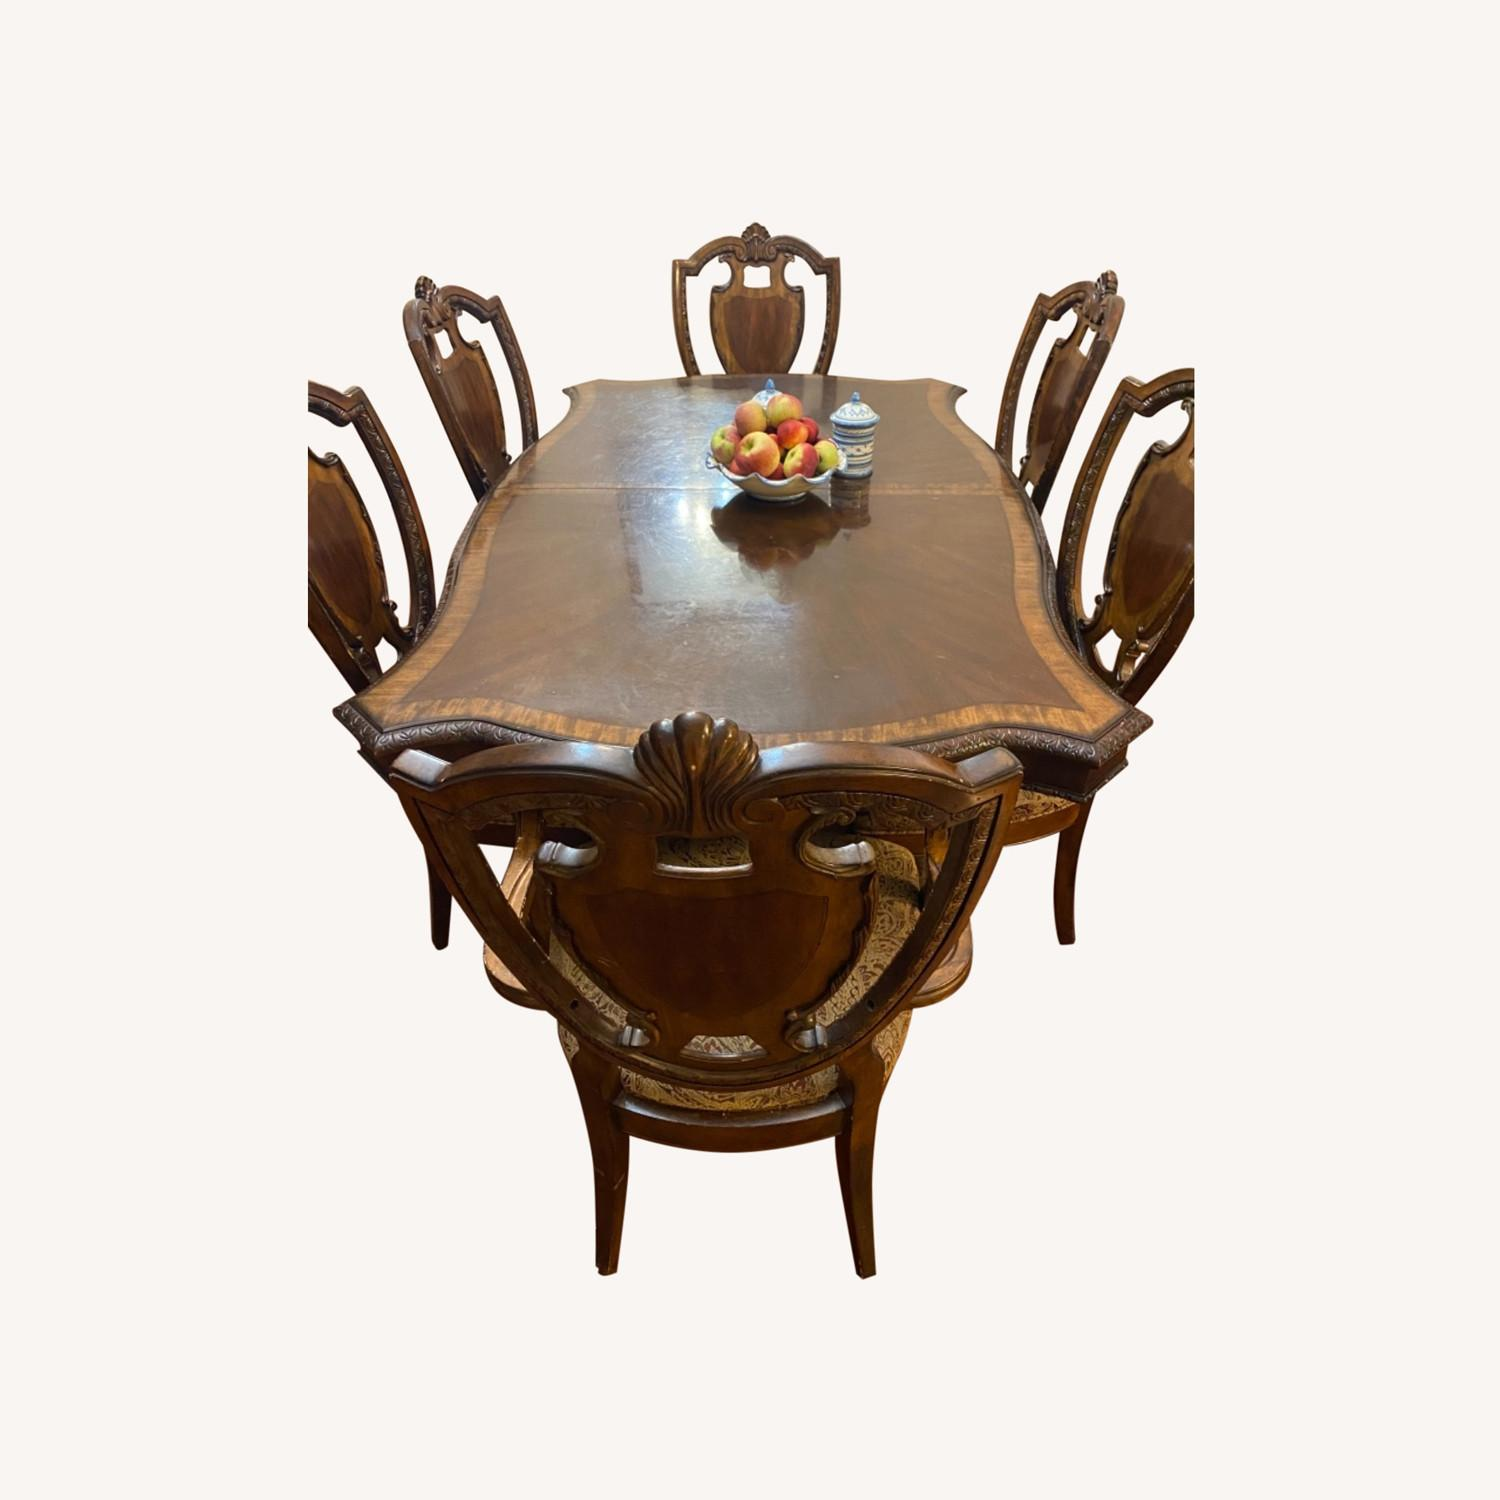 Wooden Dining Room Table Set of 9 Pieces - image-0